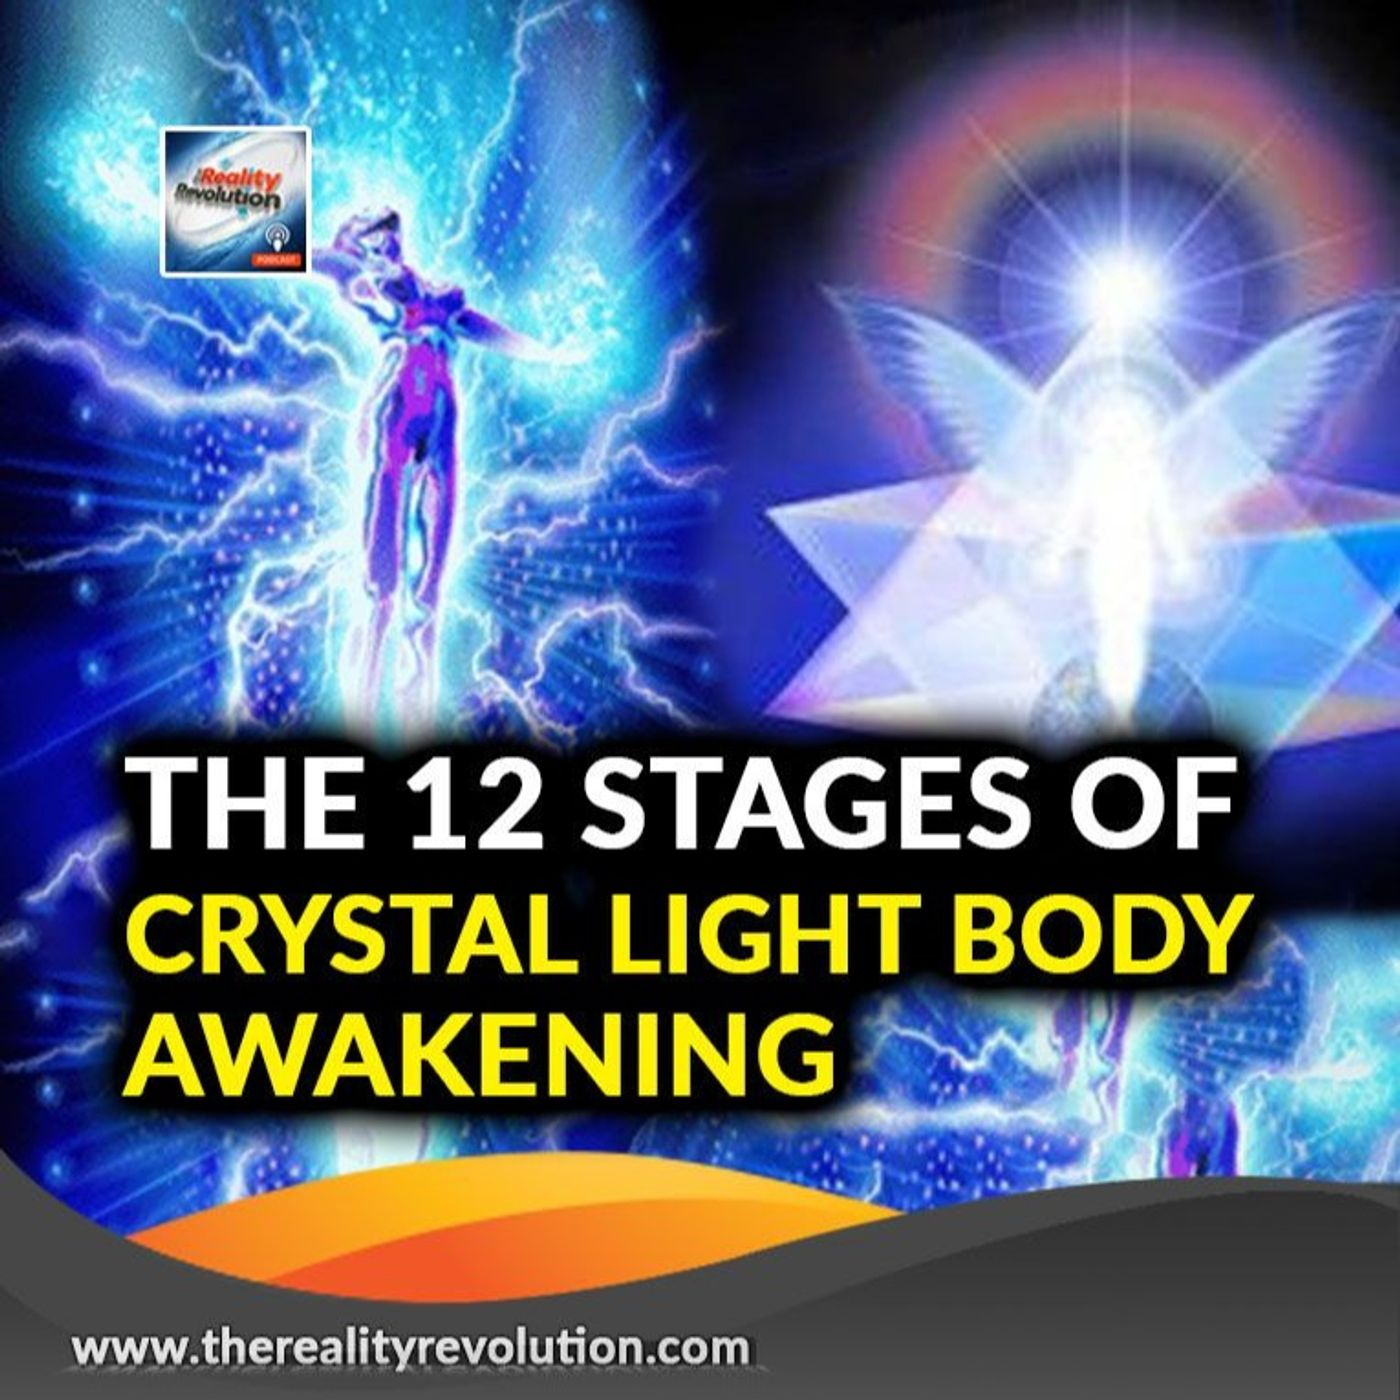 The 12 Stages In Awakening The Crystal Light Body